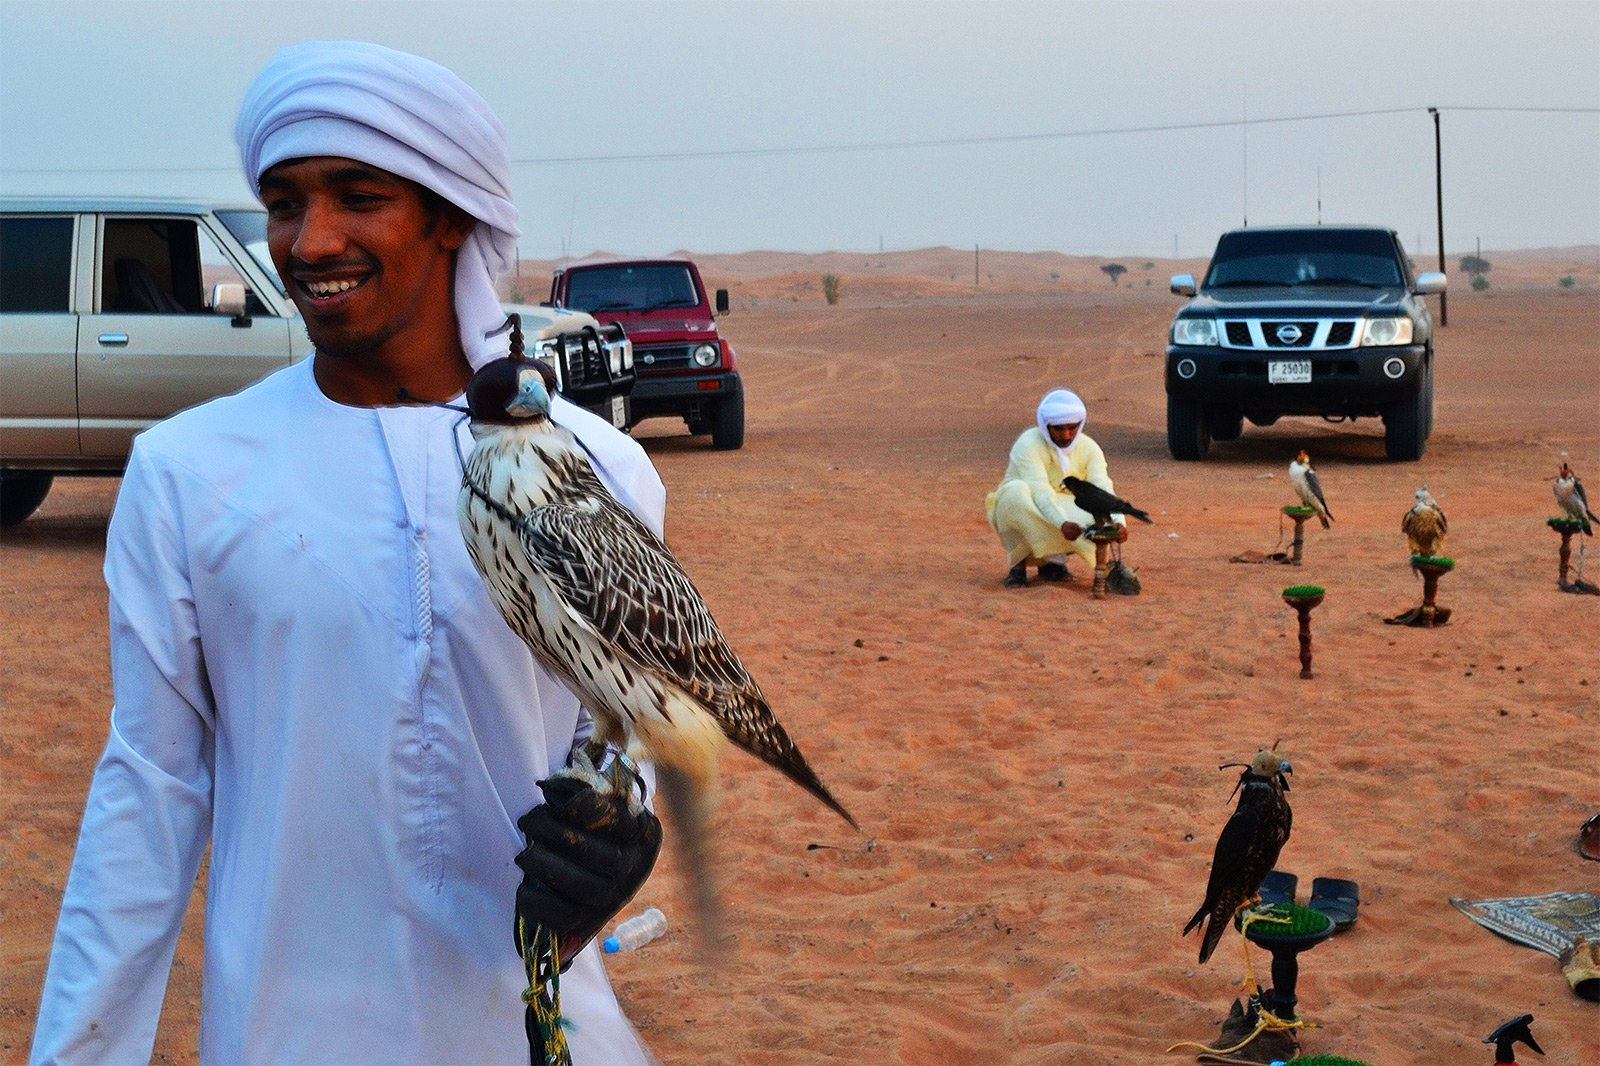 How to attend falconry in Dubai